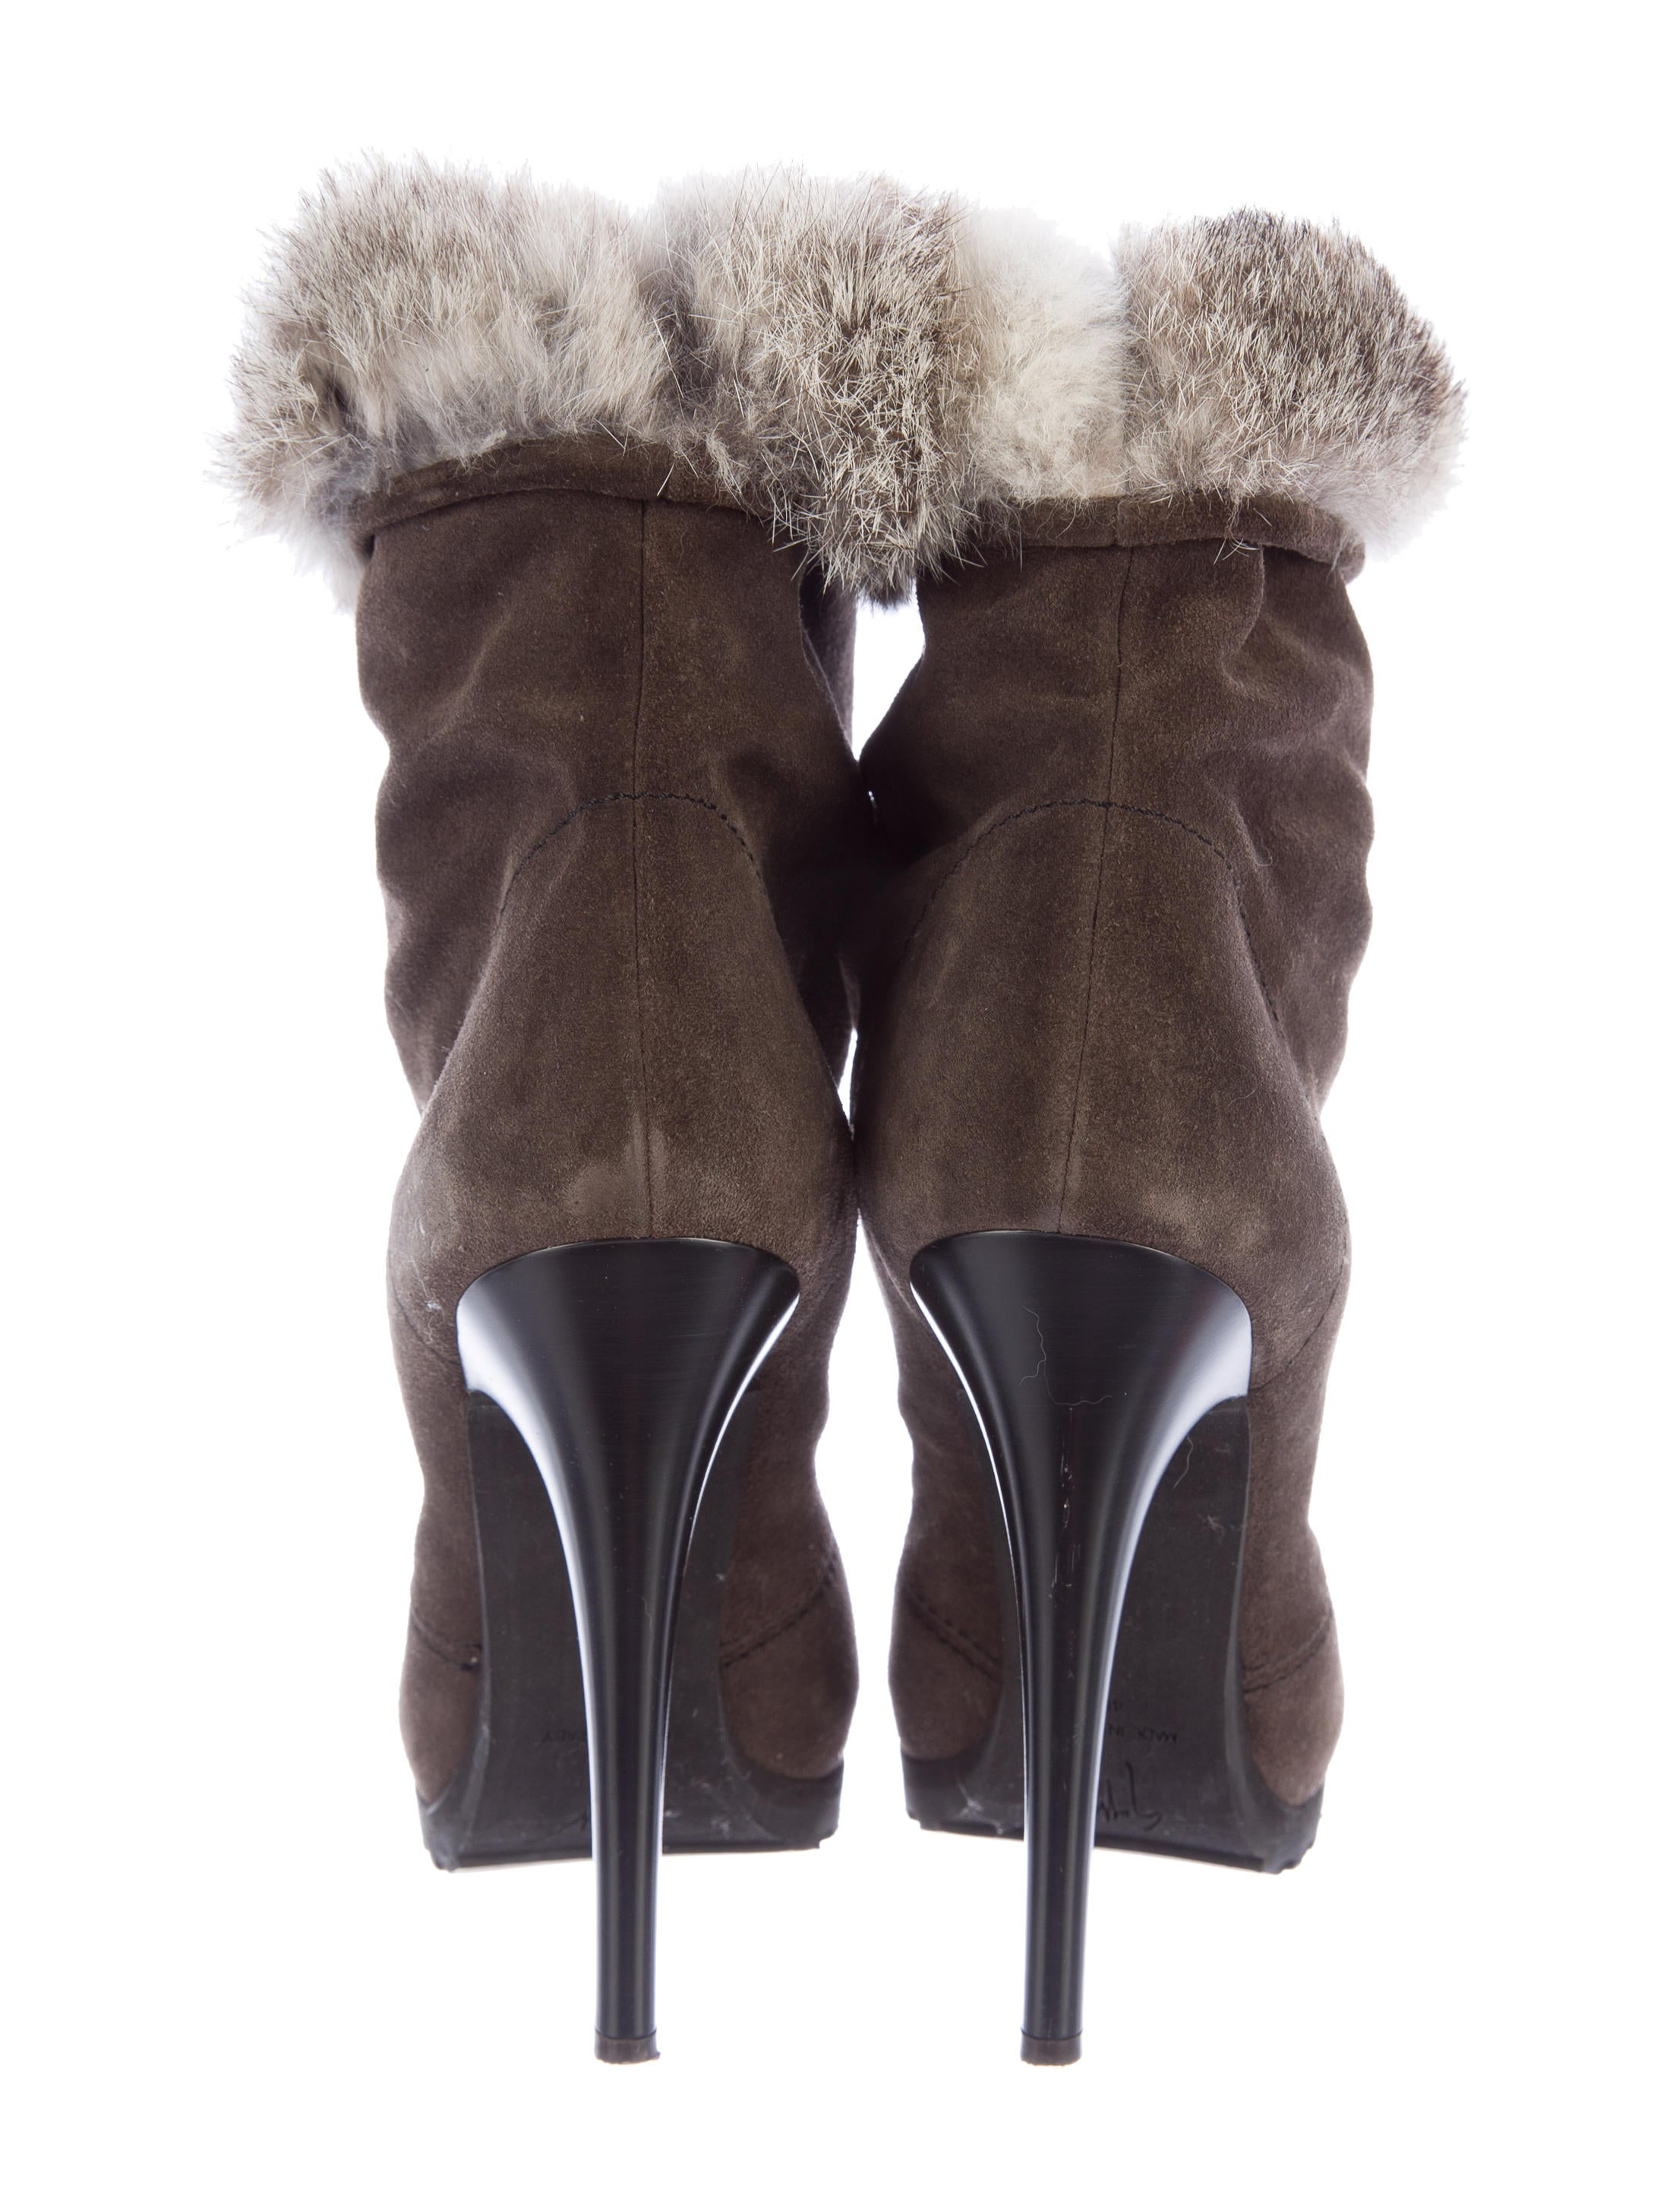 Ankle Boots With Fur Trim. Shoespie has the sexiest collection ofAnkle Boots With Fur Trimthat every girls wants in her sisk-profi.ga out with a piece from this collection that features a variety of colors,heels and sleek designs that you will find no where else.